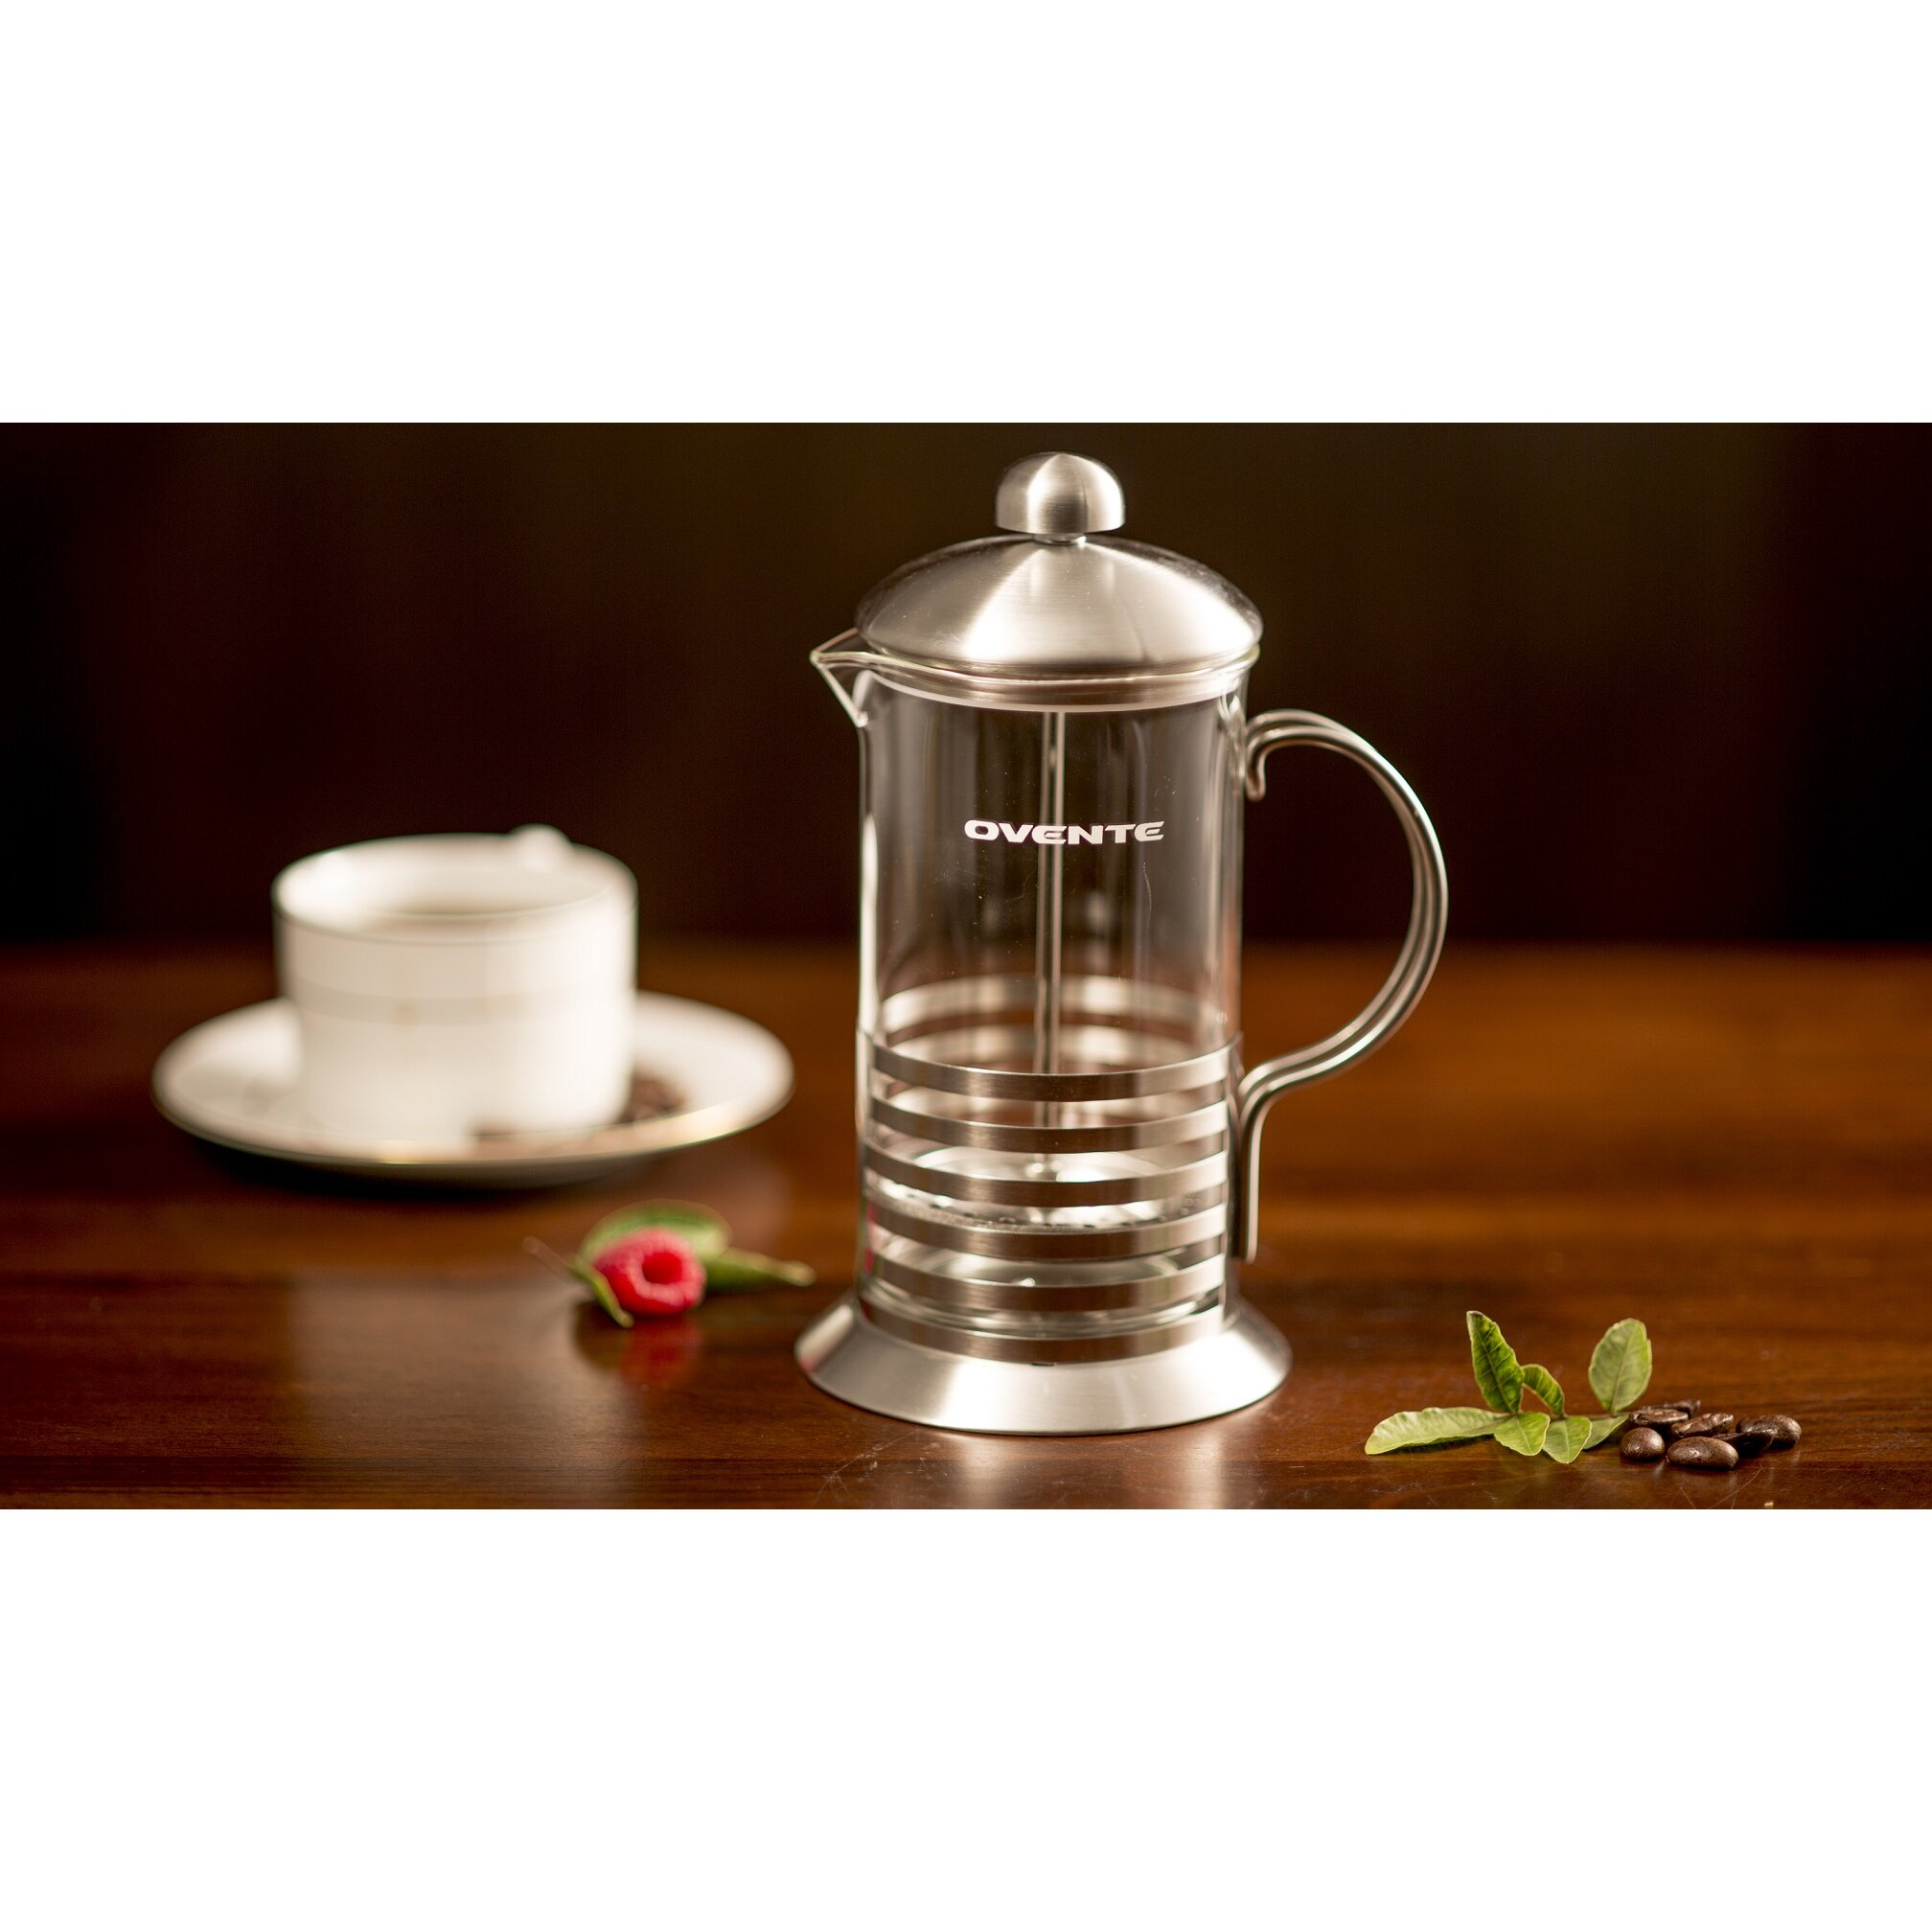 Ovente Stainless Steel French Press Coffee Maker & Reviews Wayfair